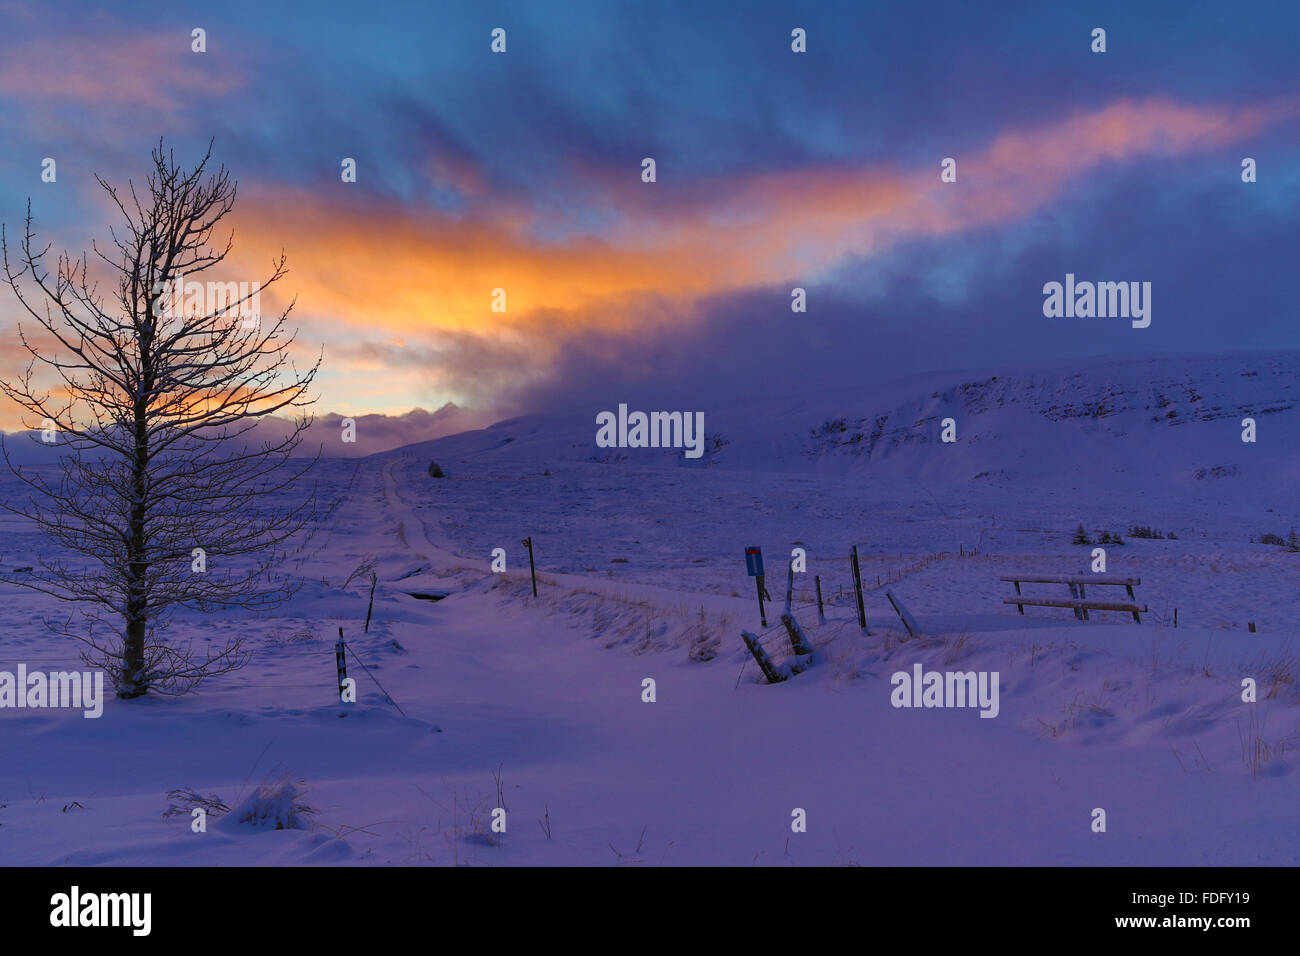 Evening sun catches the clouds after a storm over the snow-covered interior of Iceland Stock Photo